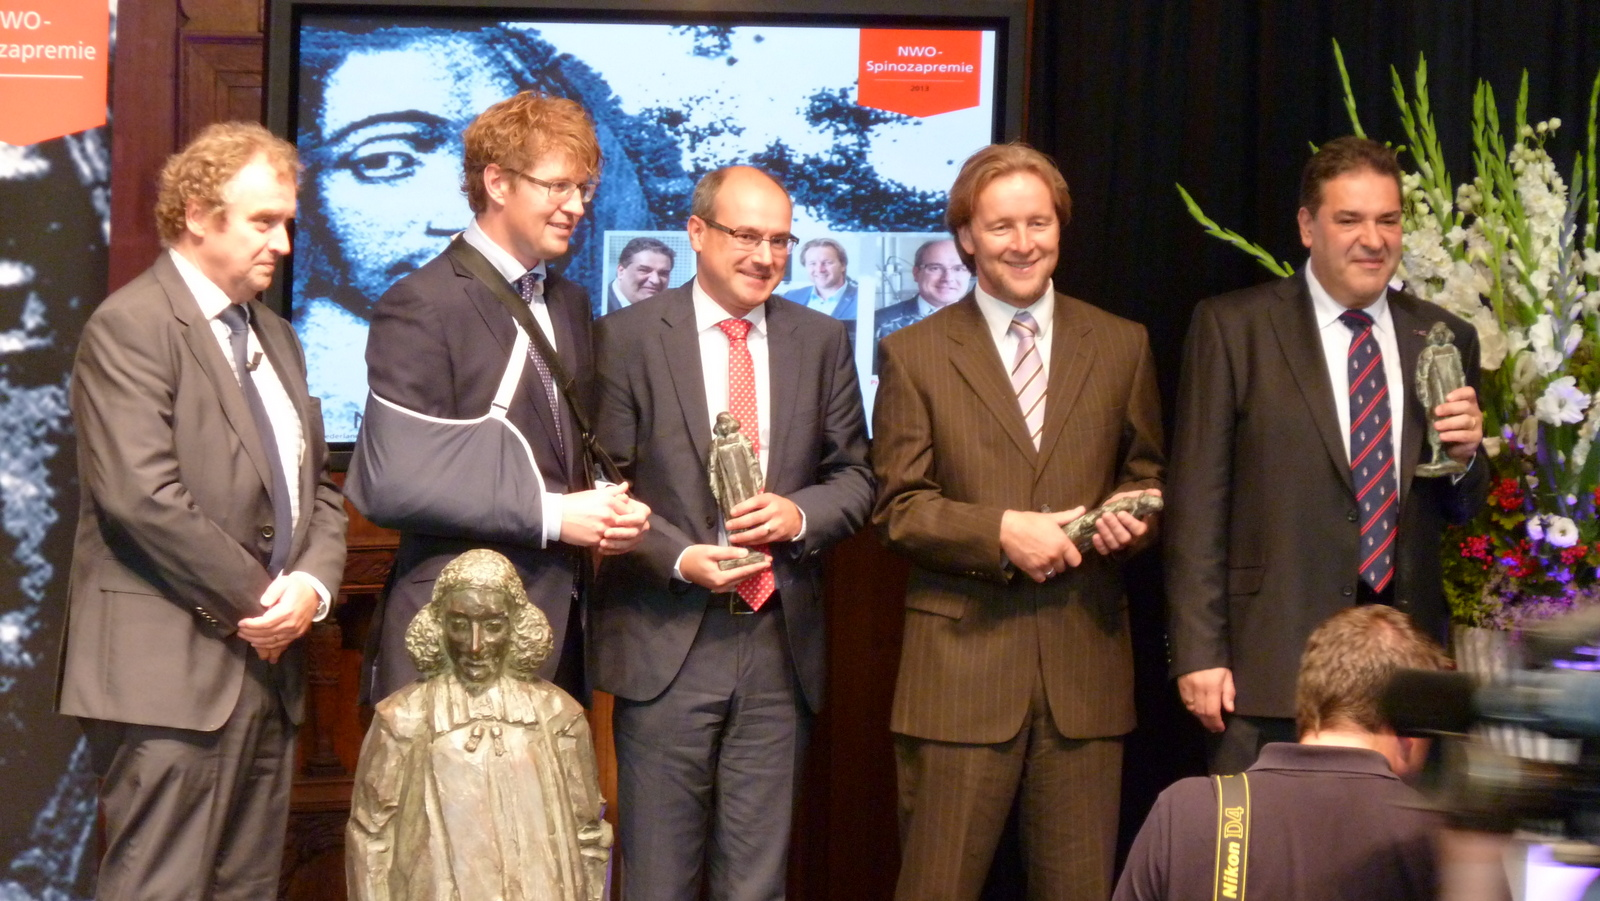 NWO Chair Jos Engelen, State Secretary for Education, Culture and Science Sander Dekker and NWO Spinoza laureates Bert Weckhuysen, Piek Vossen en Mikhail Katsnelson